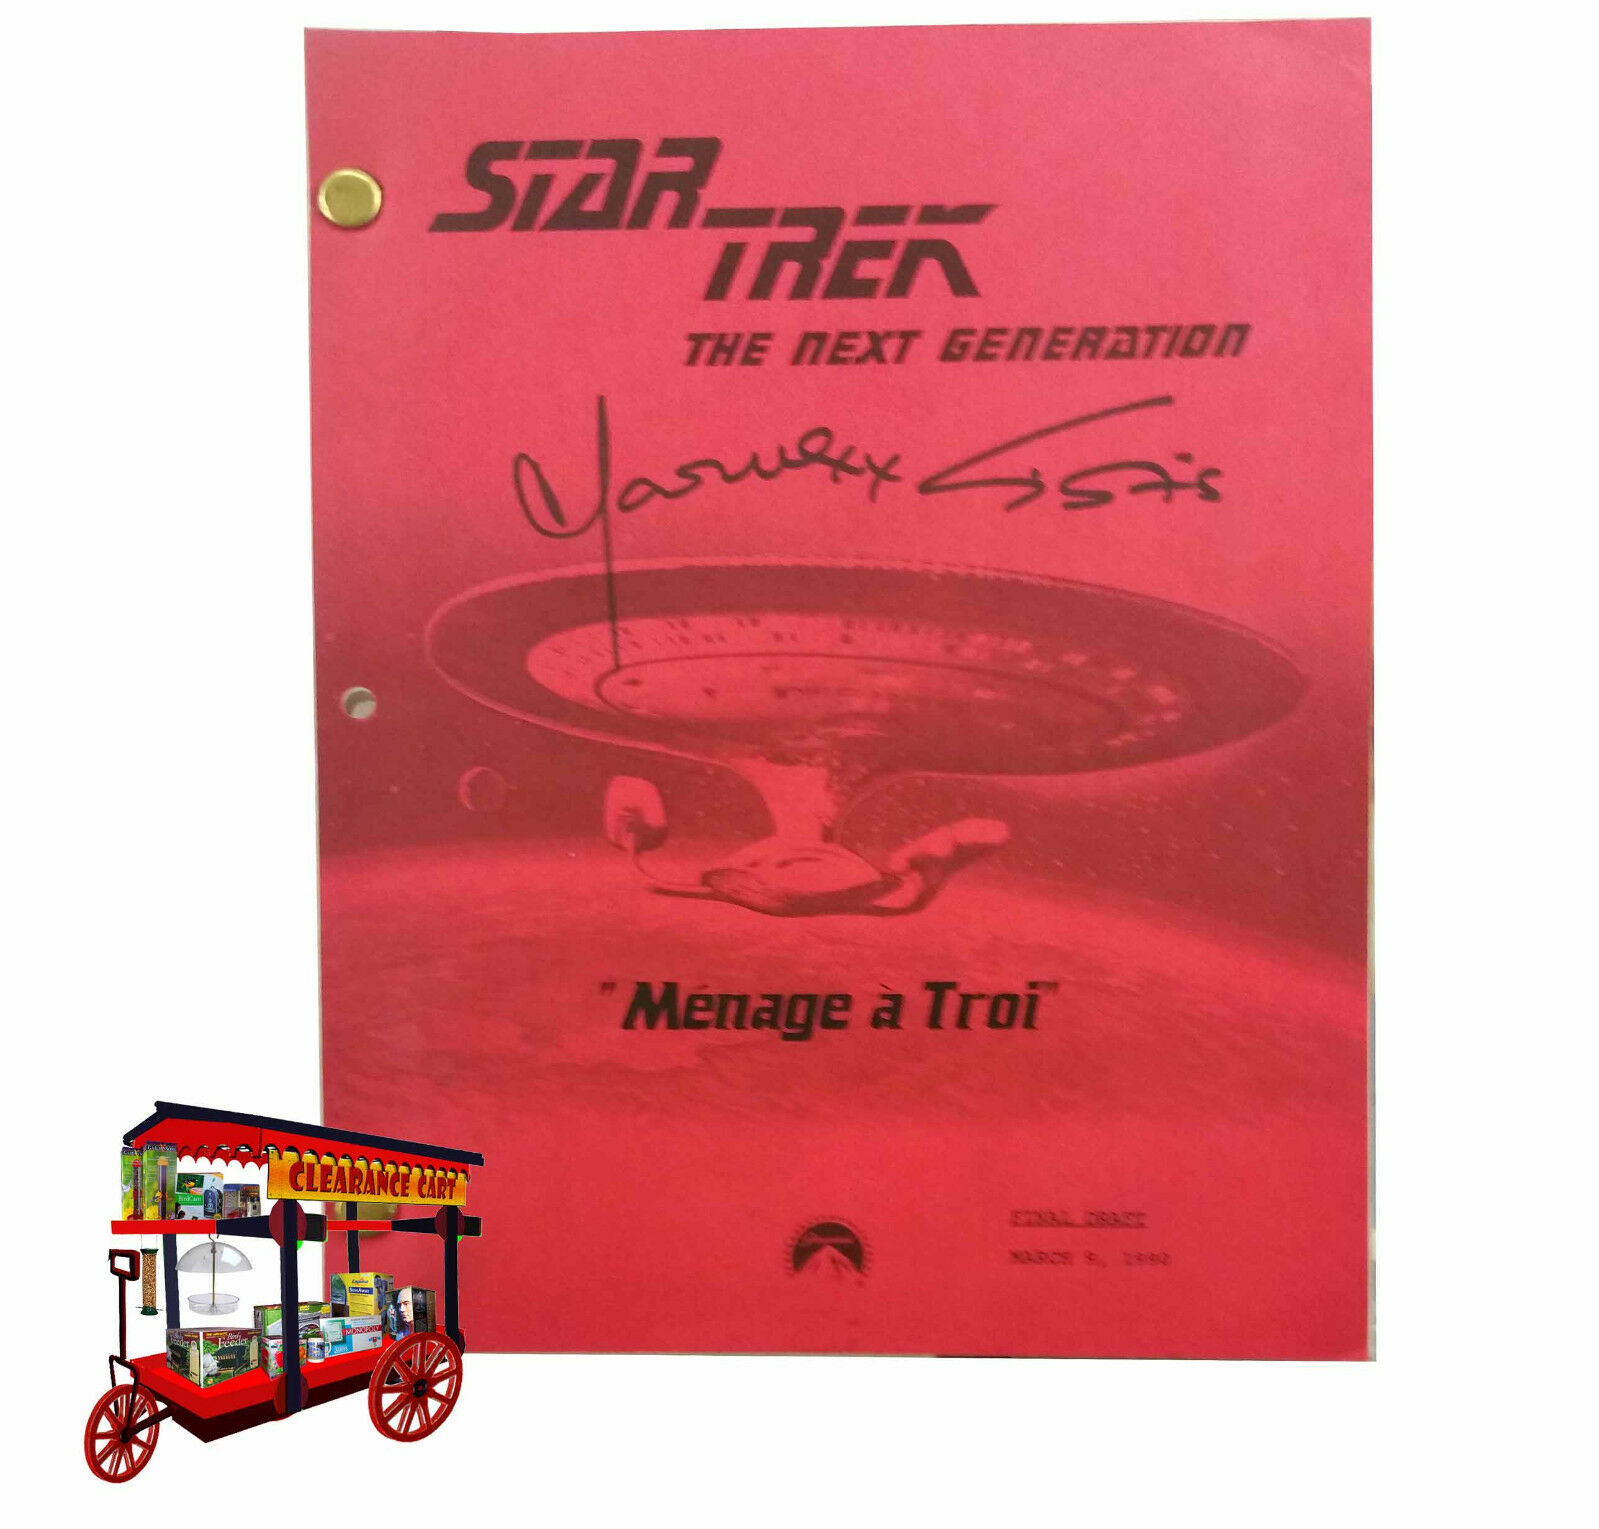 Script STAR TREK TNG 'MENAGE' a TROI' signed by M.Sirtis (TROI)